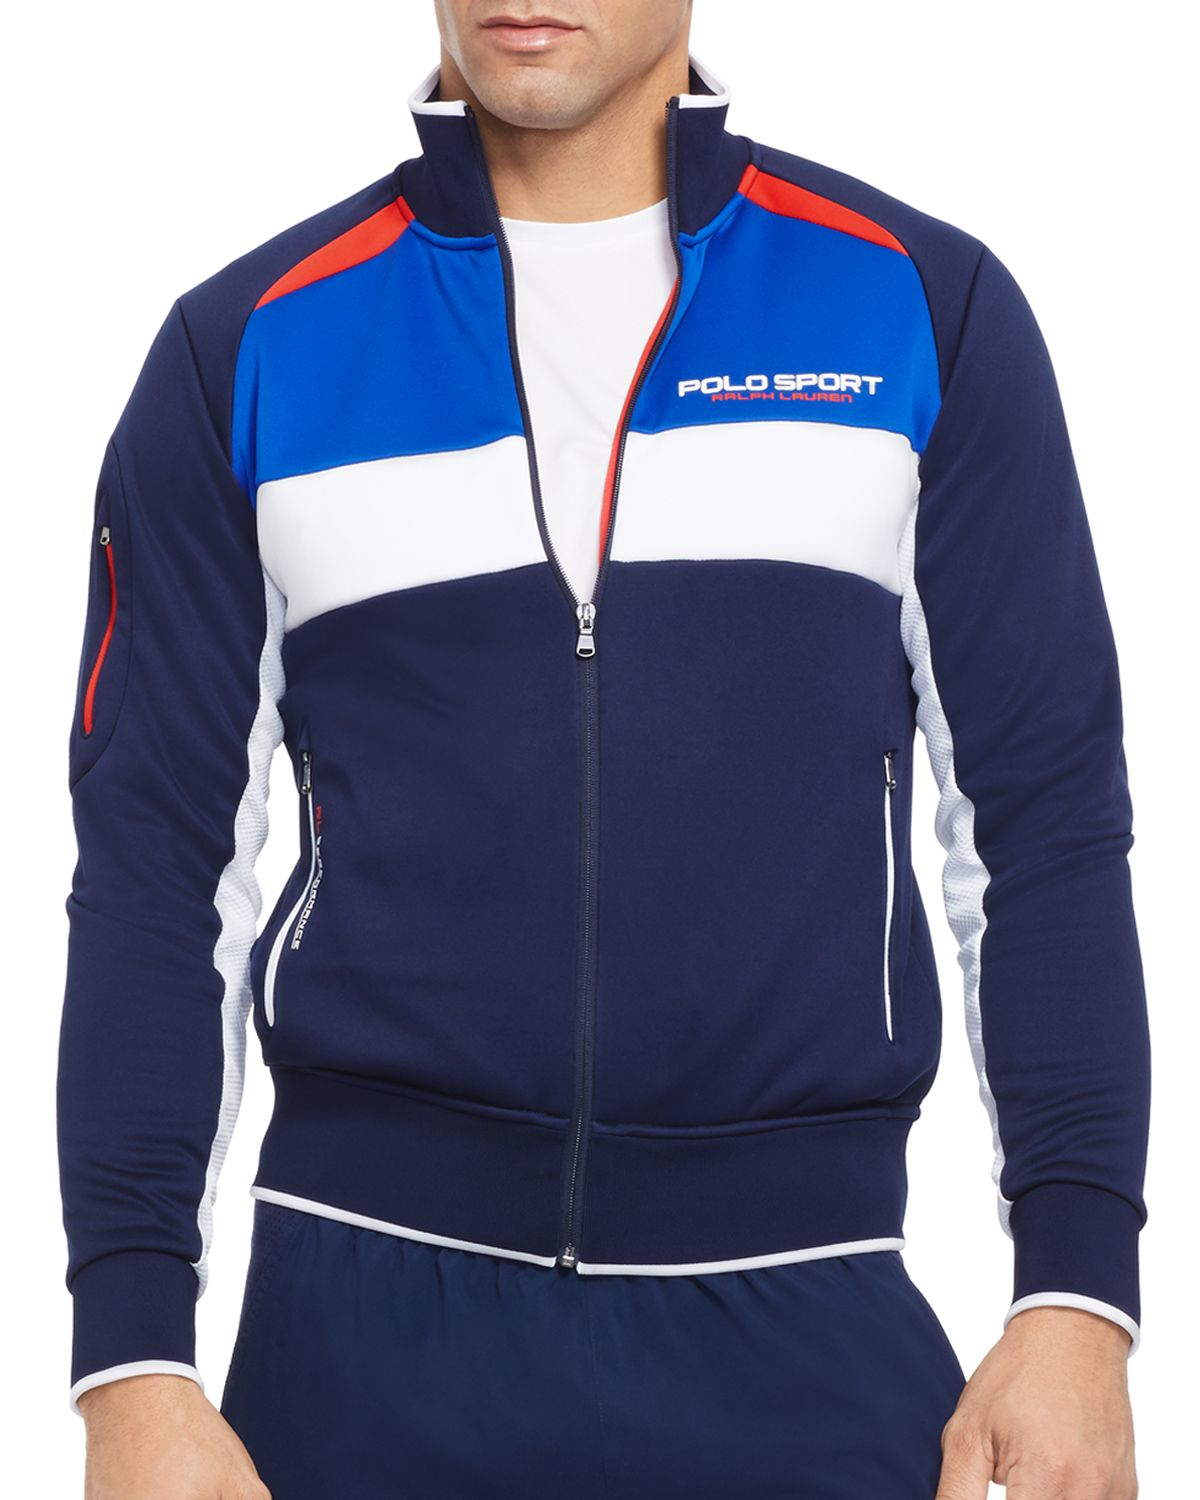 2beacde6b Polo Ralph Lauren Color-blocked Track Jacket in Blue for Men - Lyst